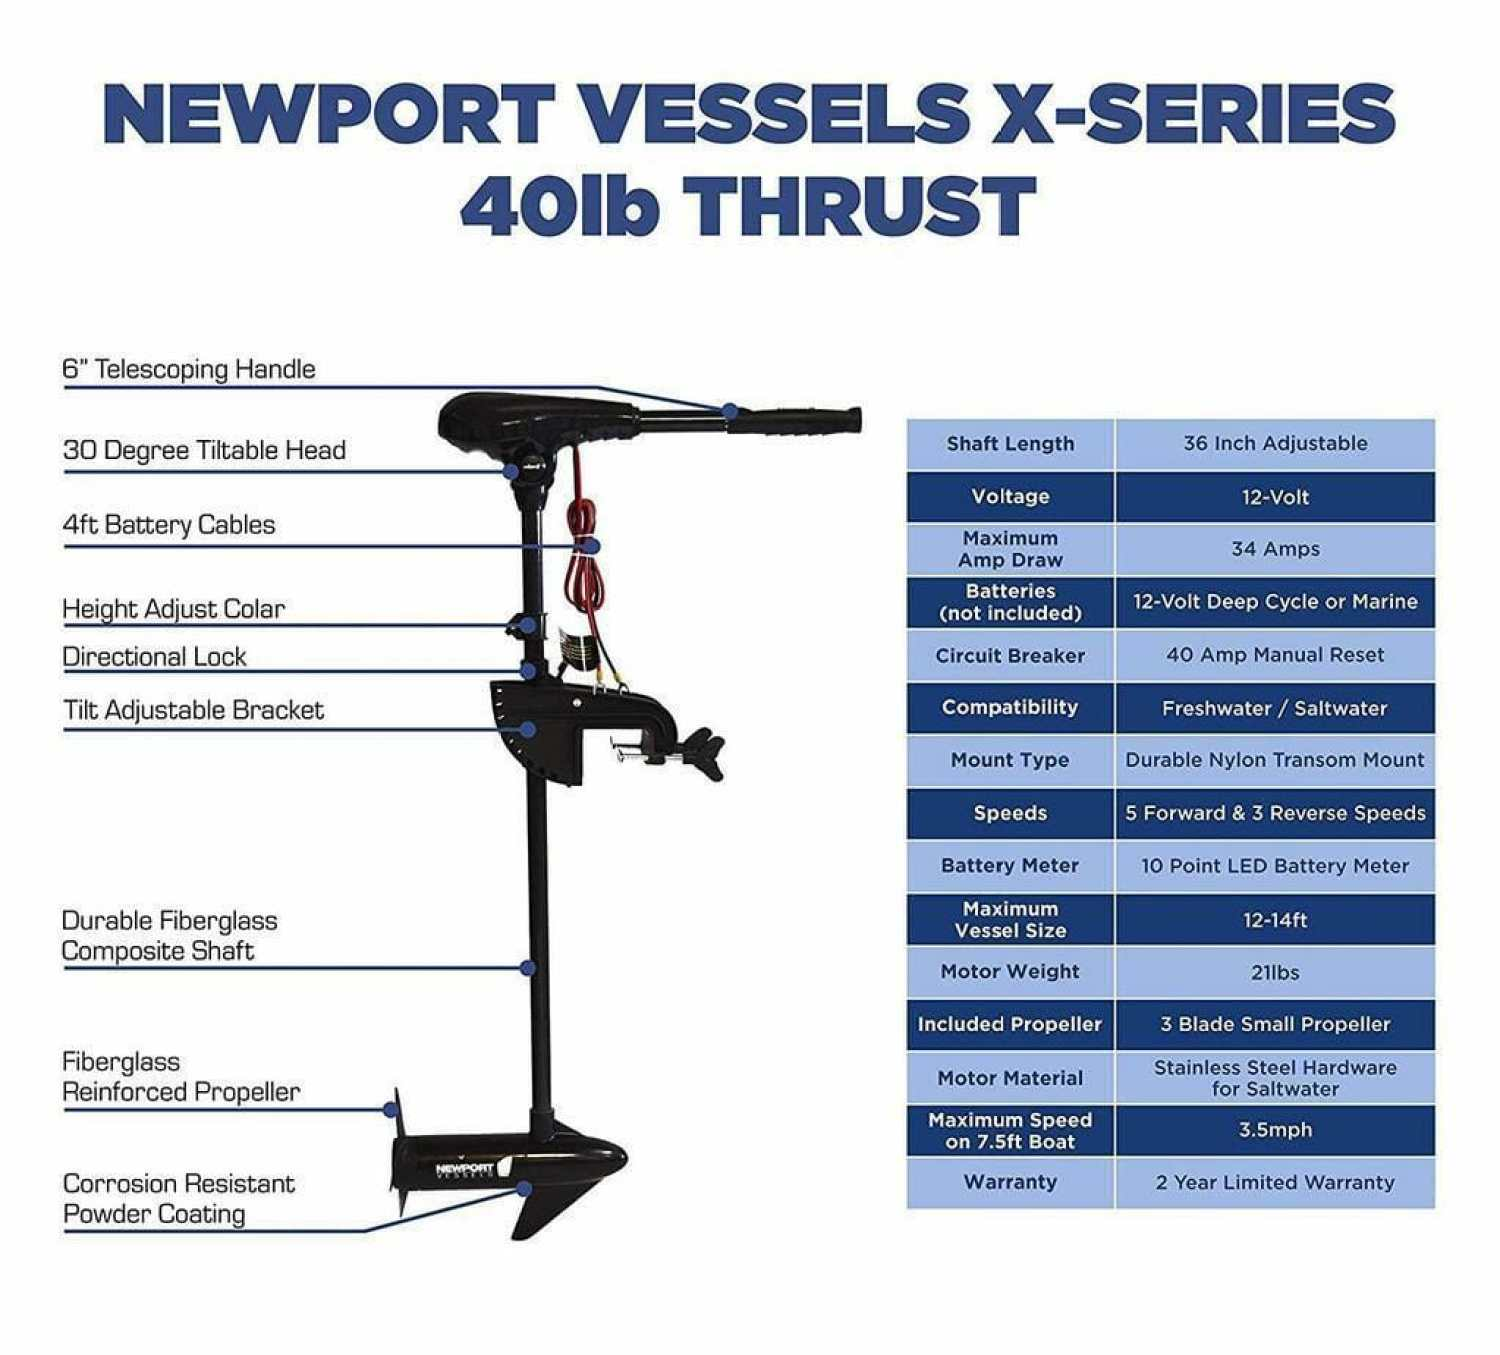 Newport Vessels 40lb Thrust Transom Mounted wLED Battery Indicator